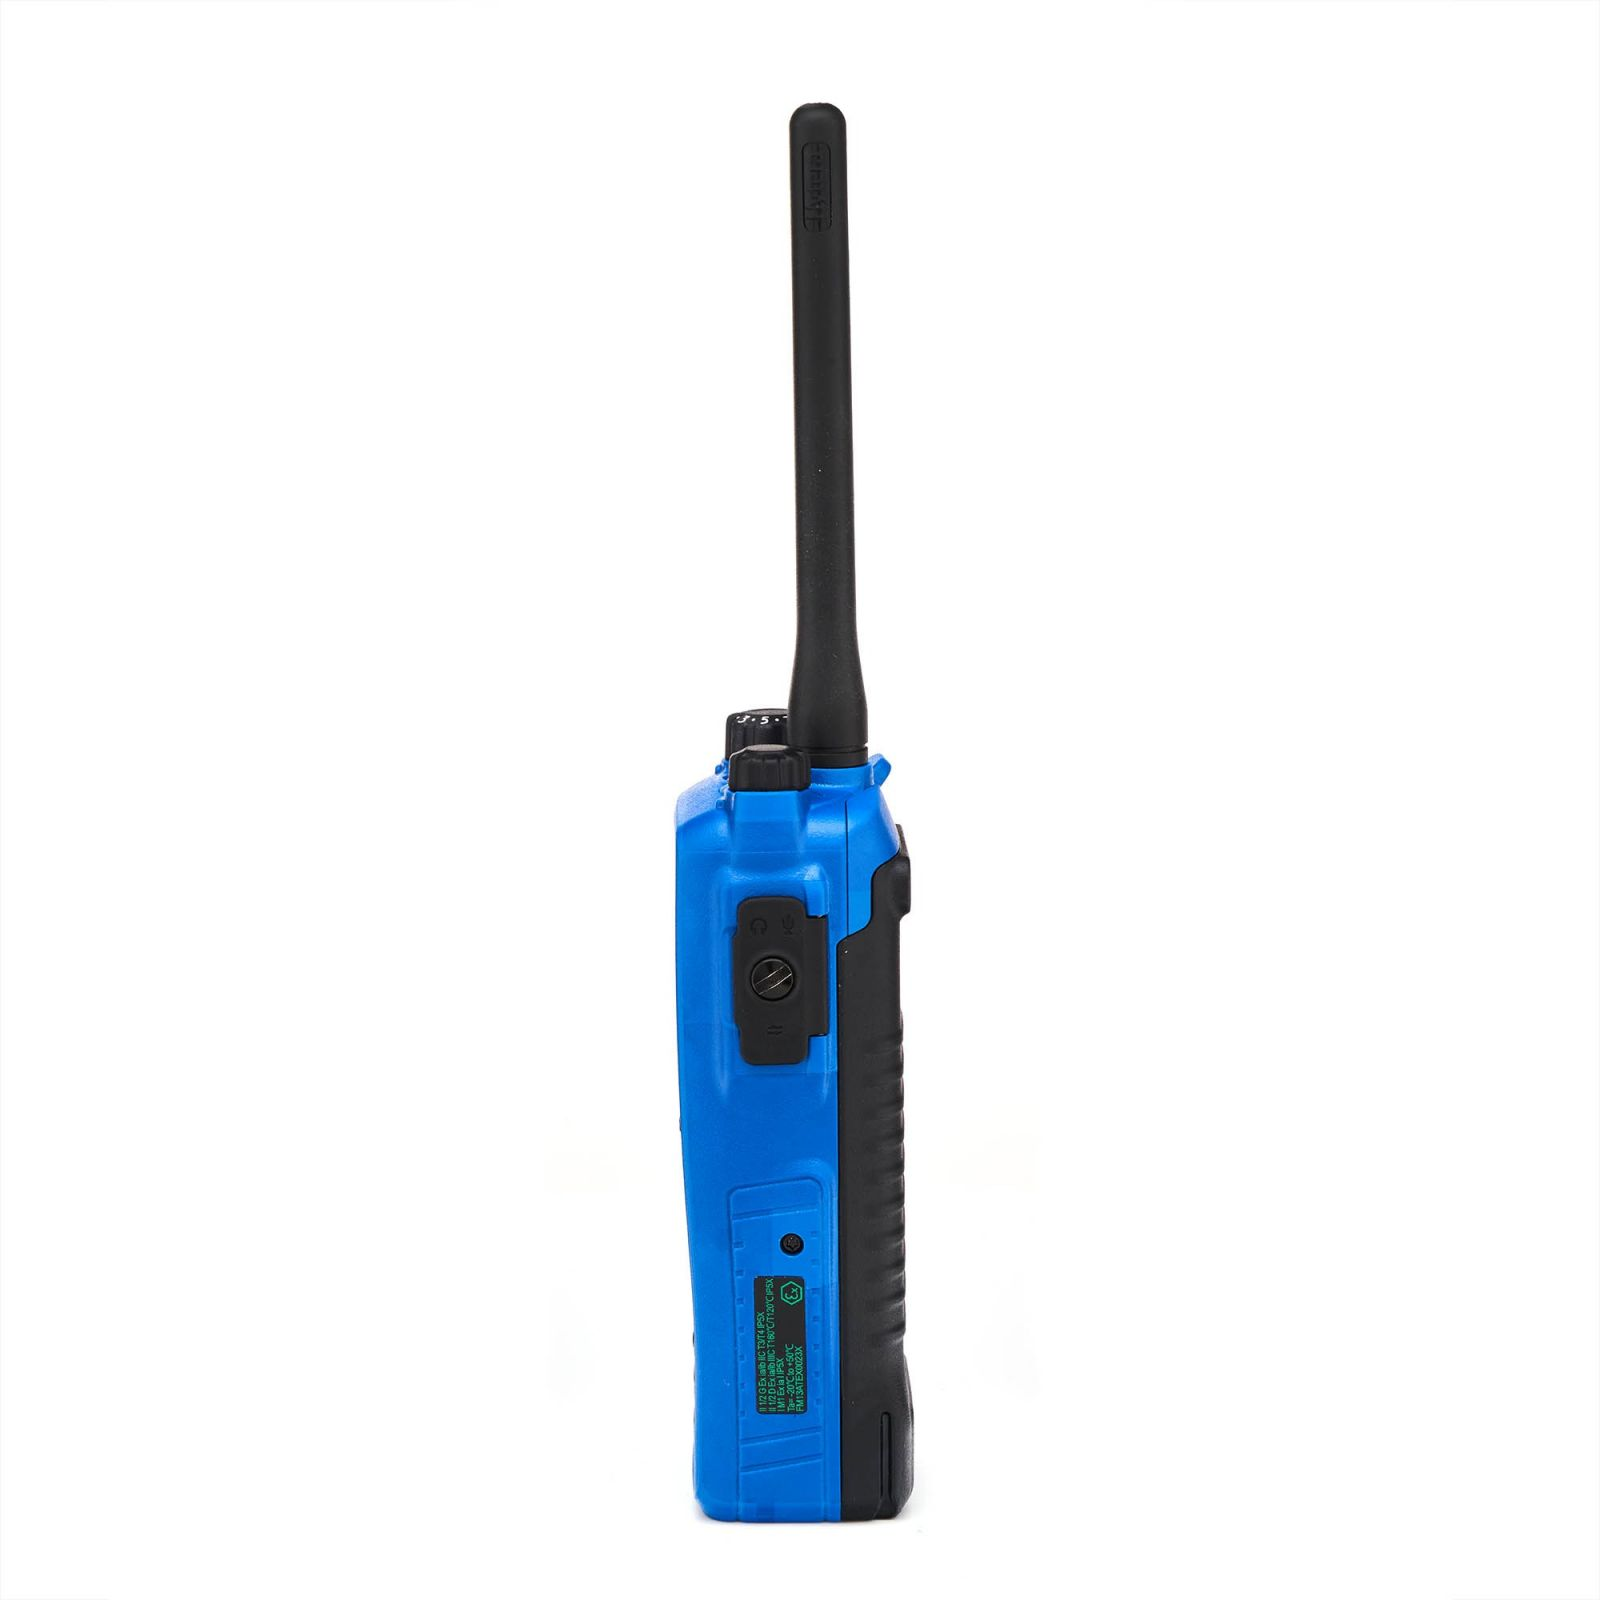 HYTERA PD795IS PORTABLE RADIO